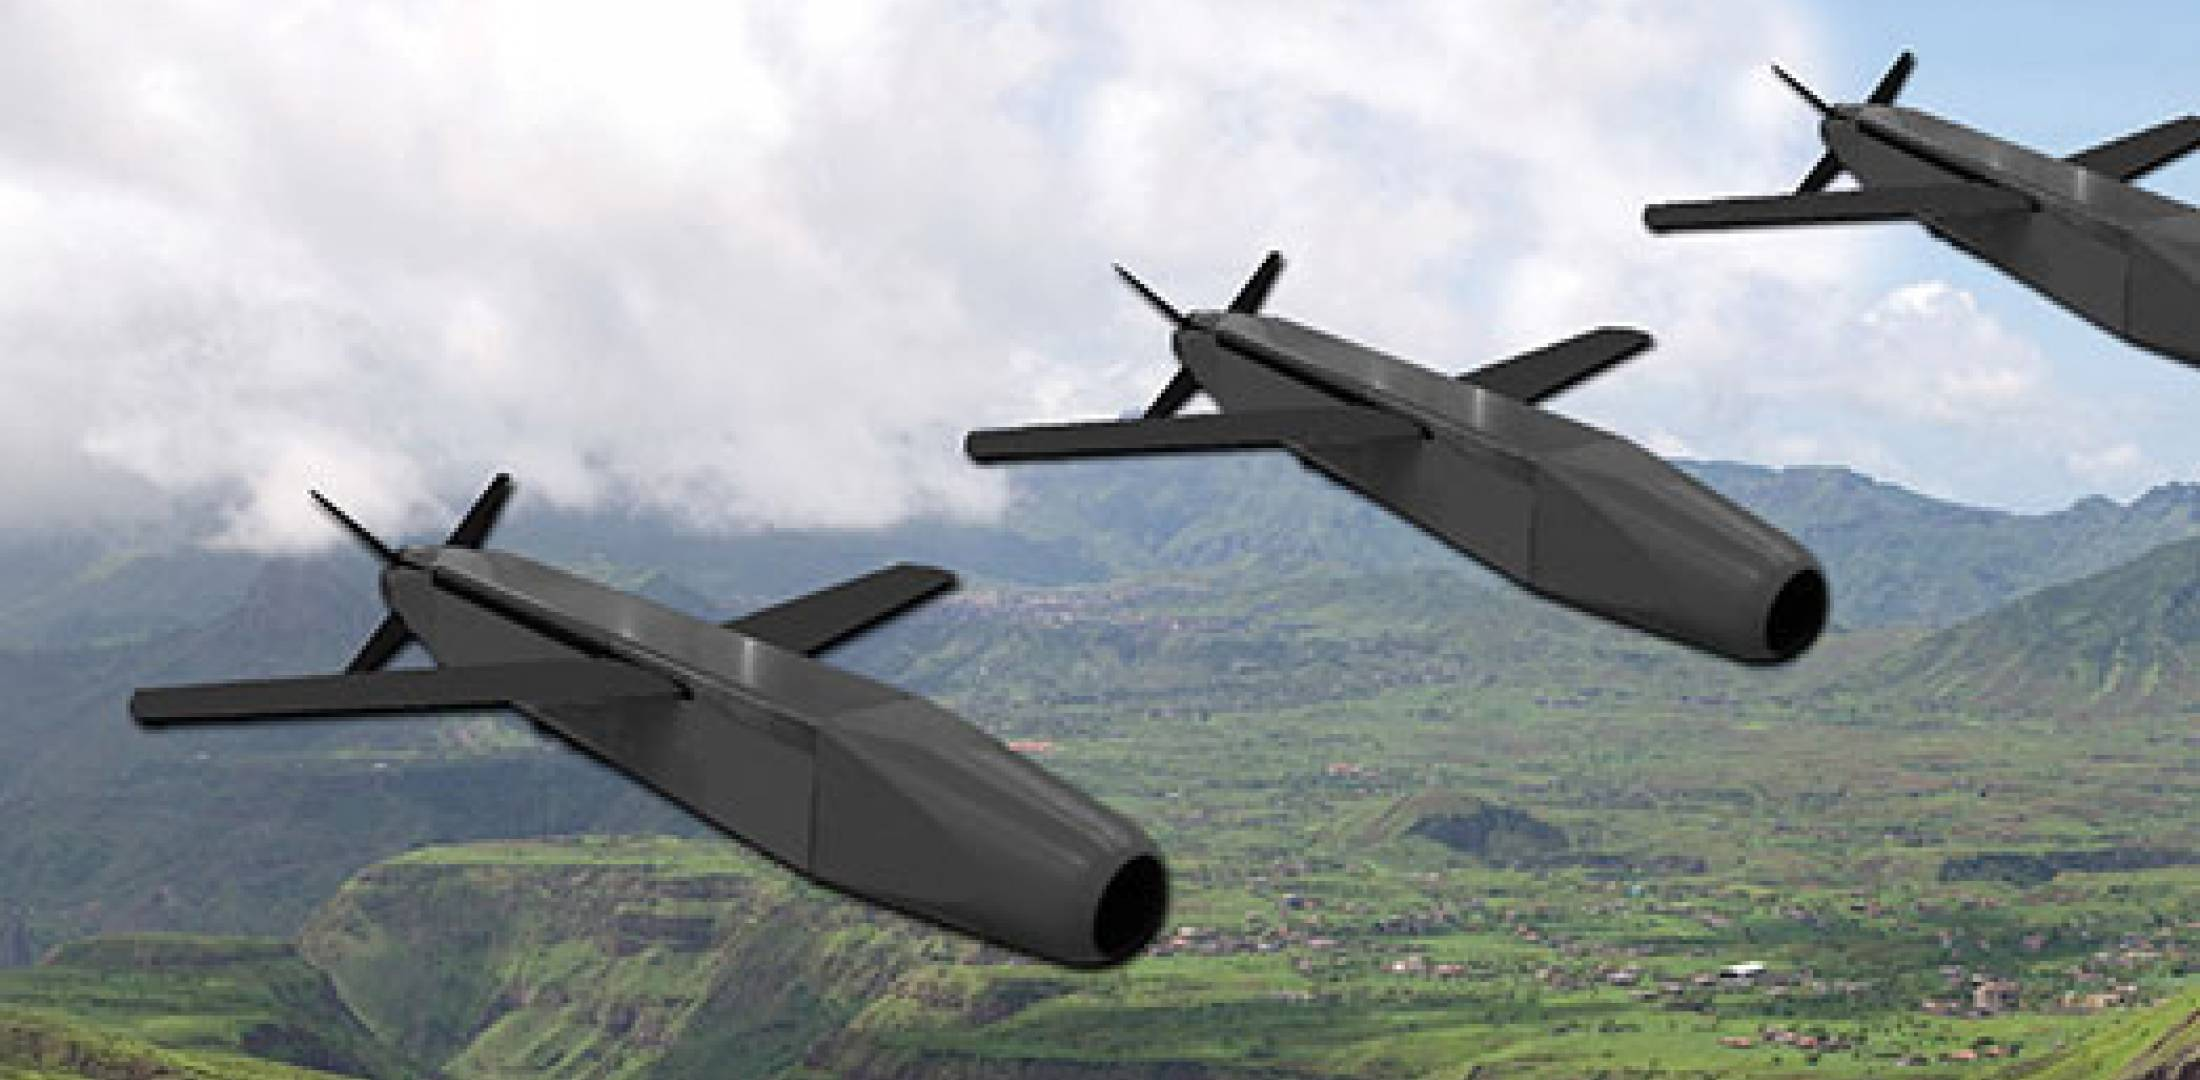 Pop-out wings give the Spice 250 a precision-guided glide bomb 100-kilometer range when launched from altitude. Simultaneous attacks can be made against multiple targets.